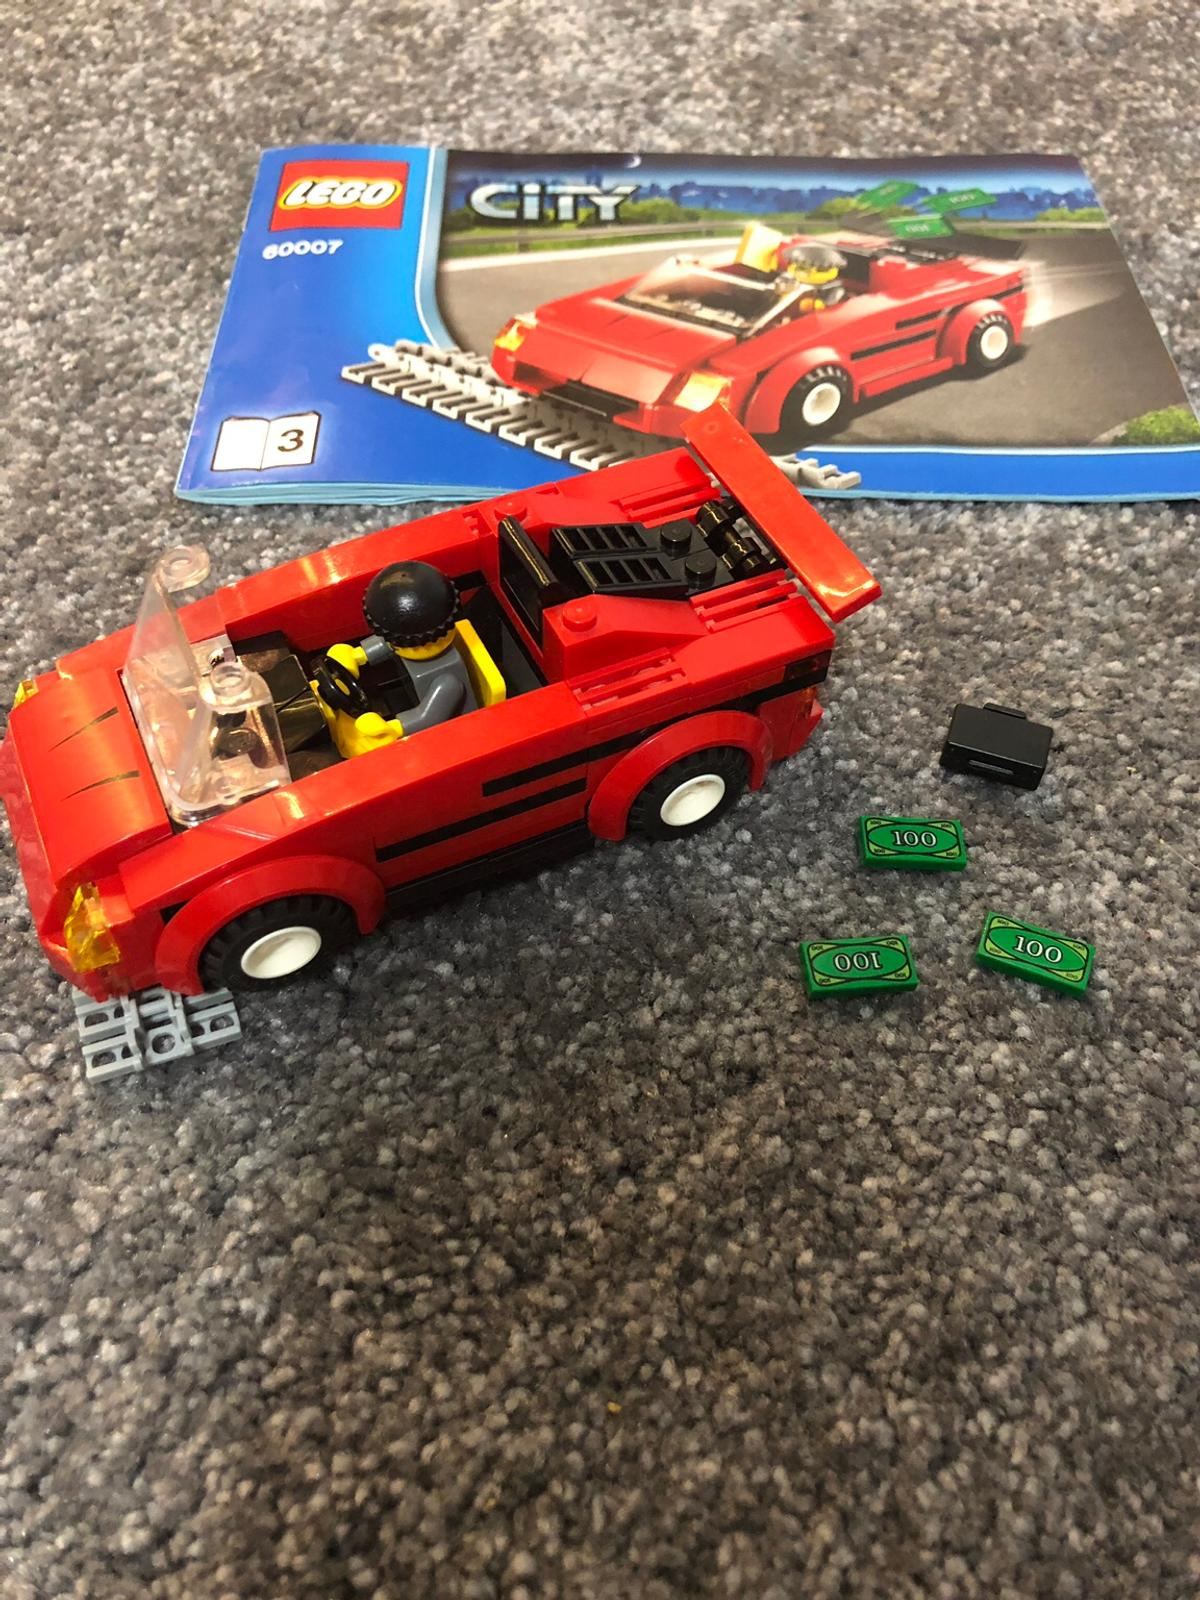 Lego city High Speed chase set 1 x police Motorcycle 1 x police keep 1 x get away car & robber  Built and put on shelf  Some price are Change in original color  No box